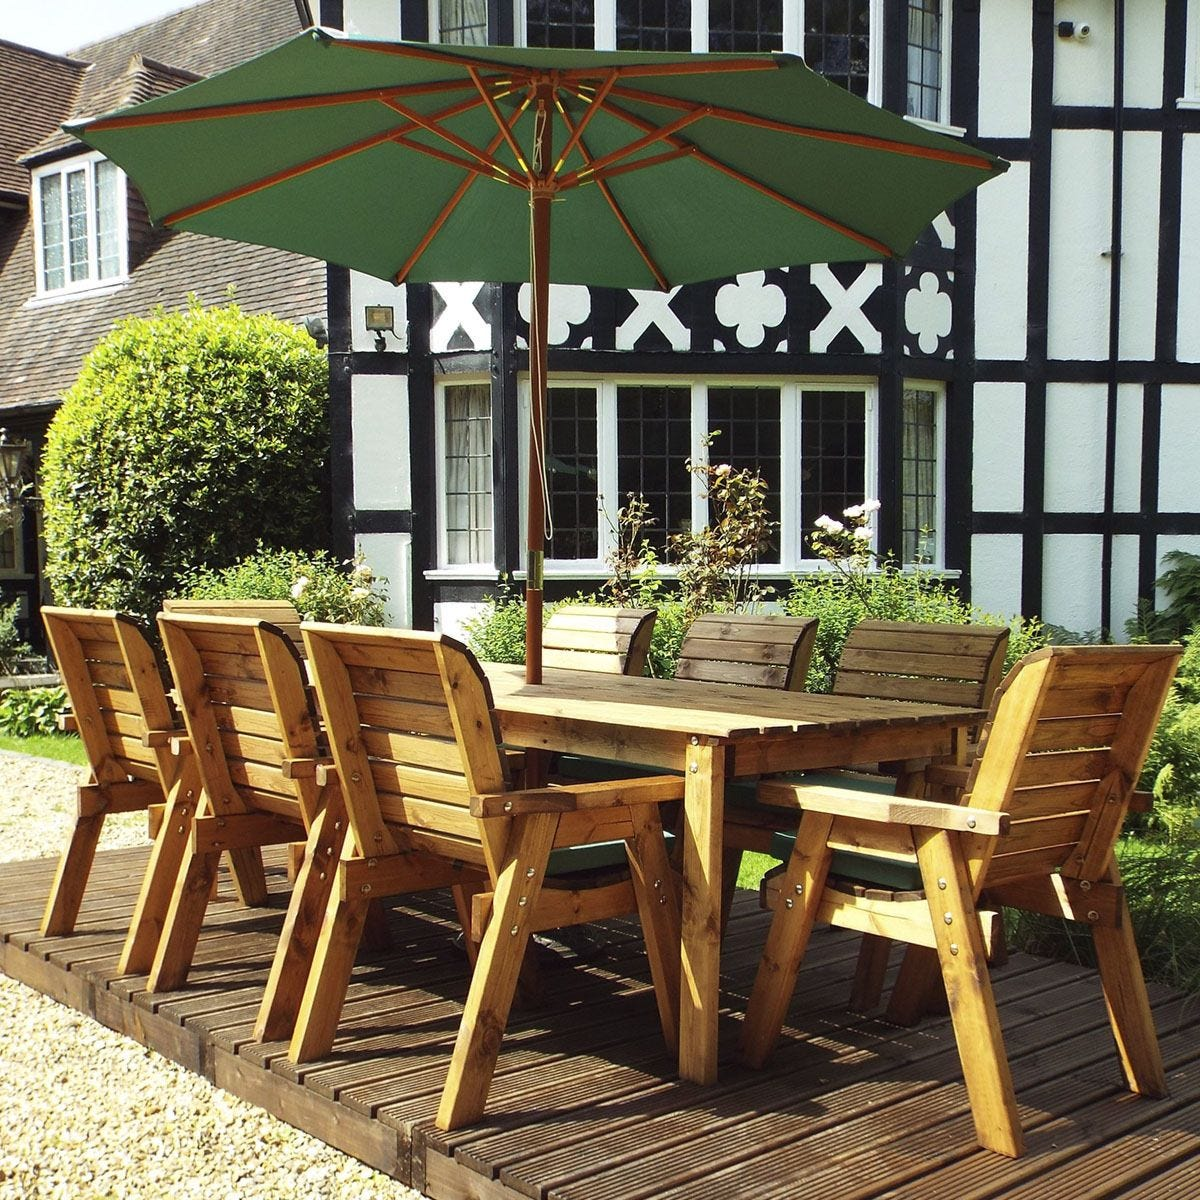 Charles Taylor 8 Seater Rectangular Table Set with Green Cushions, Storage Bag, Parasol and Base